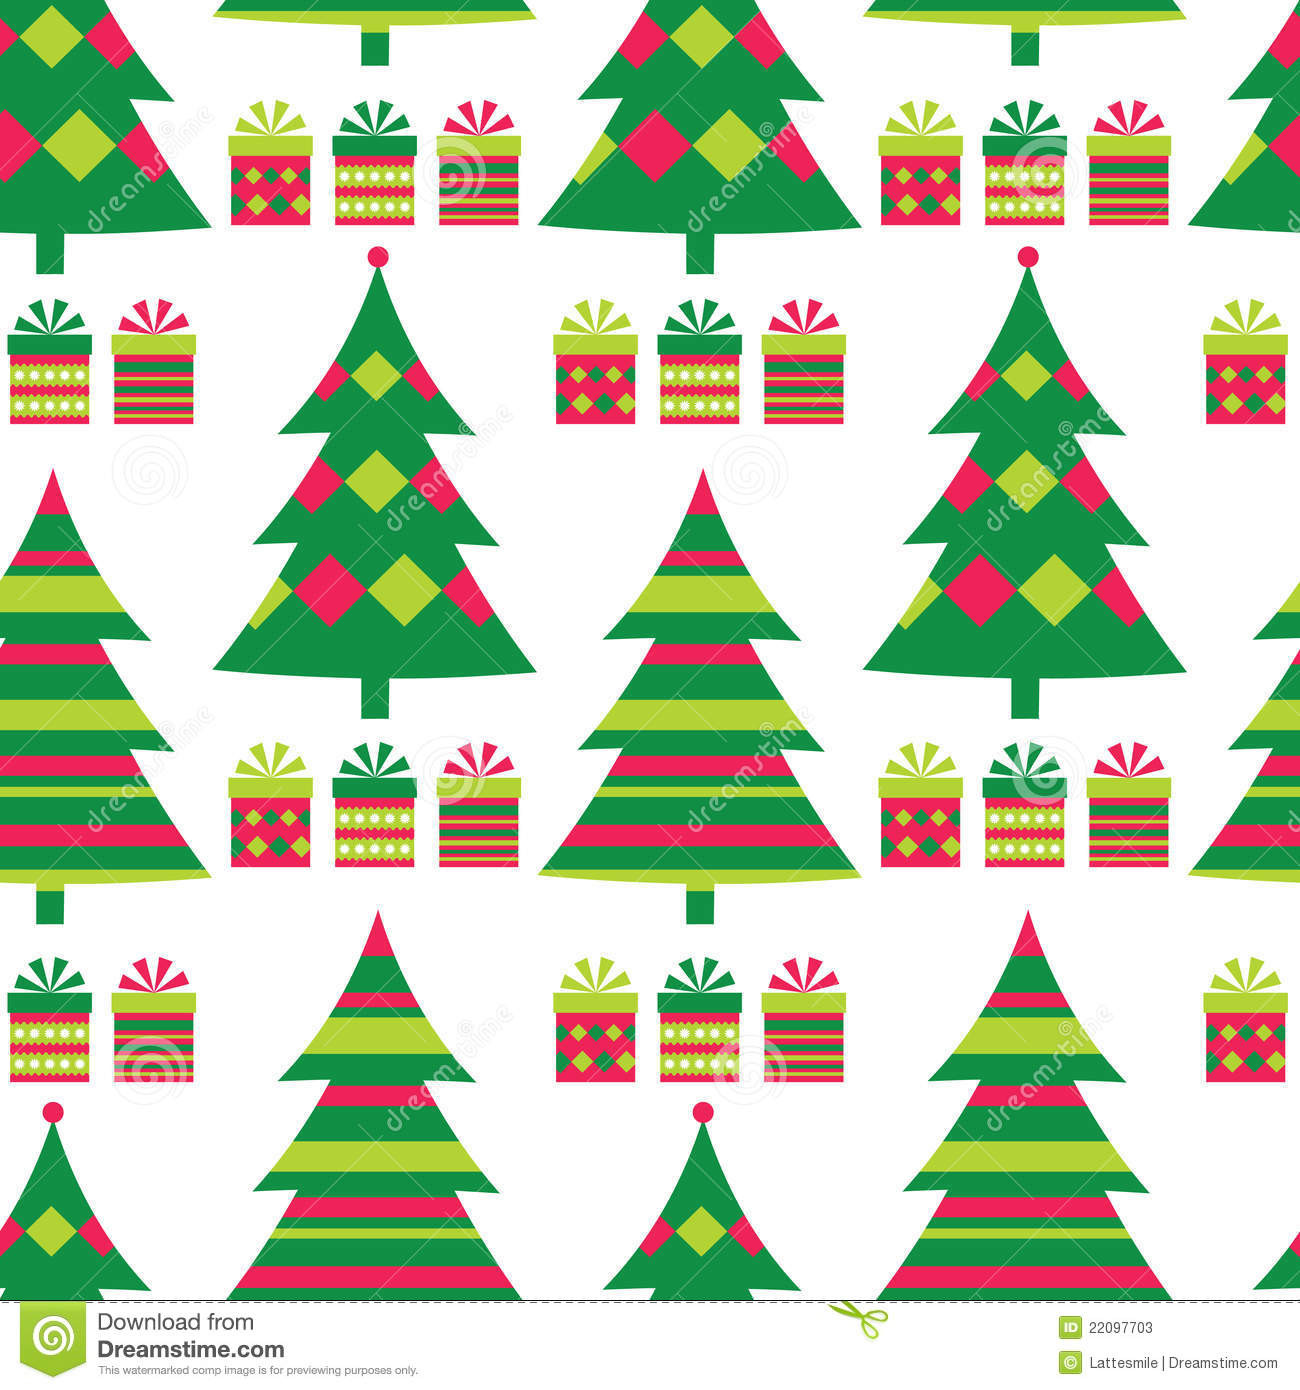 Christmas Tree Pattern Unique Christmas Tree Seamless Pattern Stock Vector Of Great 46 Images Christmas Tree Pattern